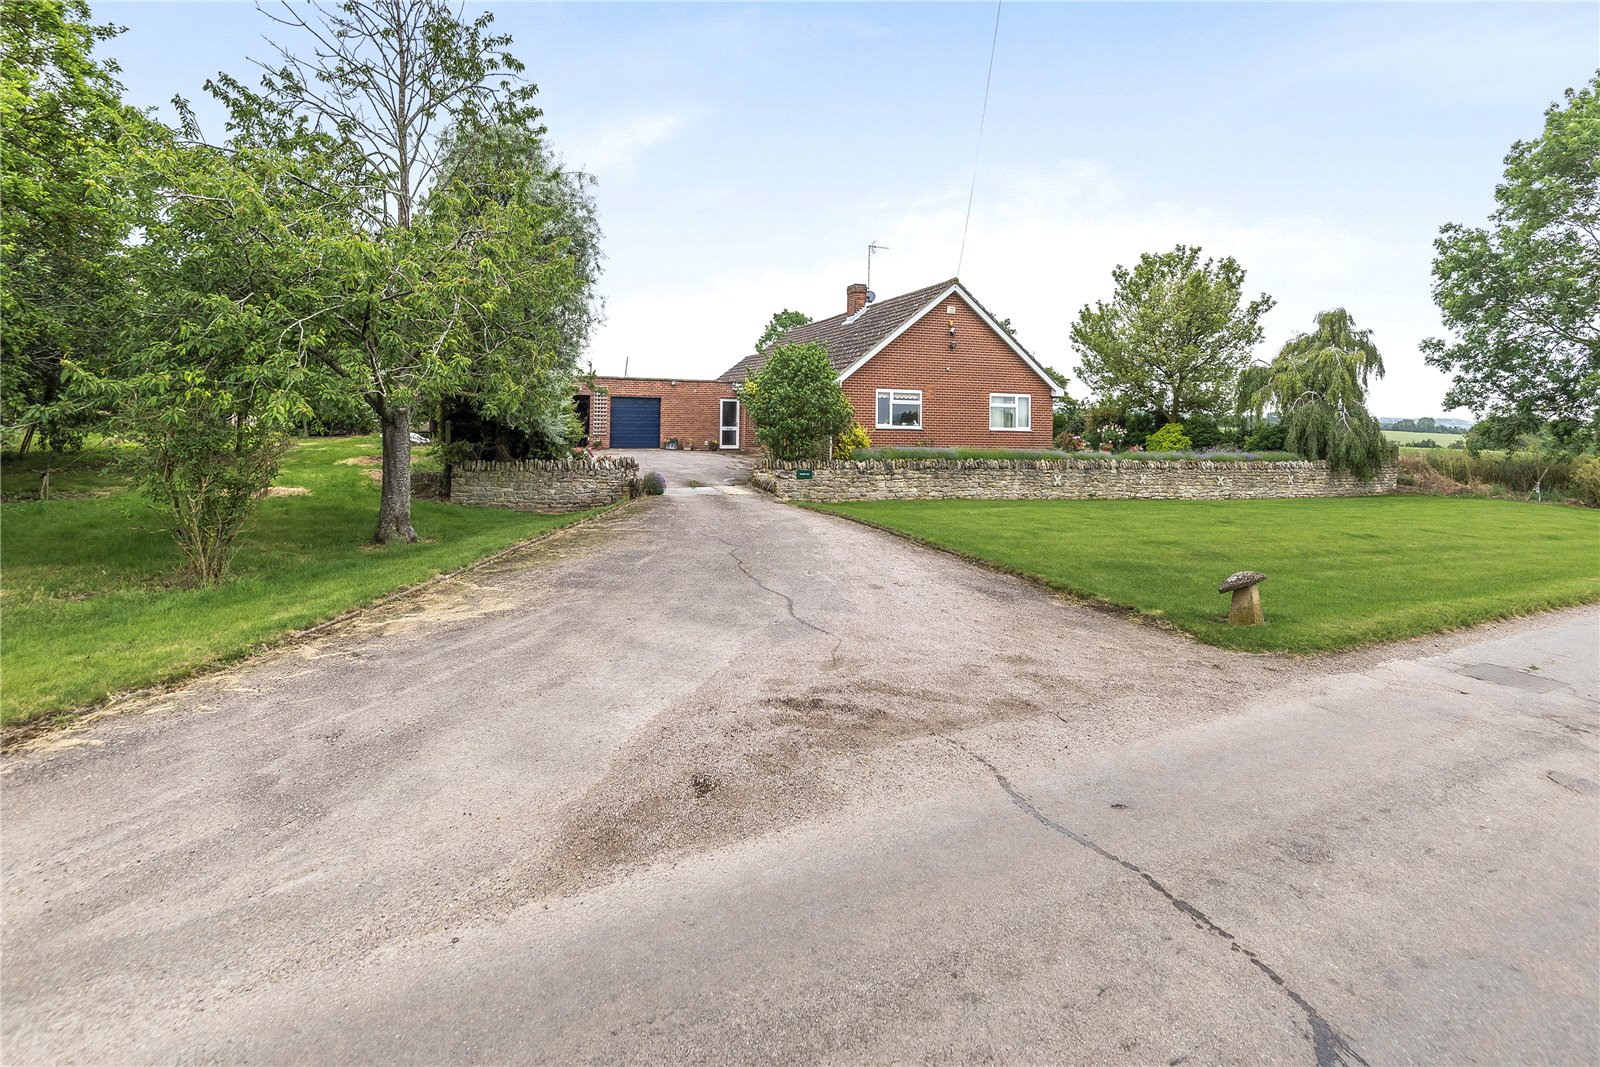 3 bed bungalow for sale in Wintringham, St. Neots 0